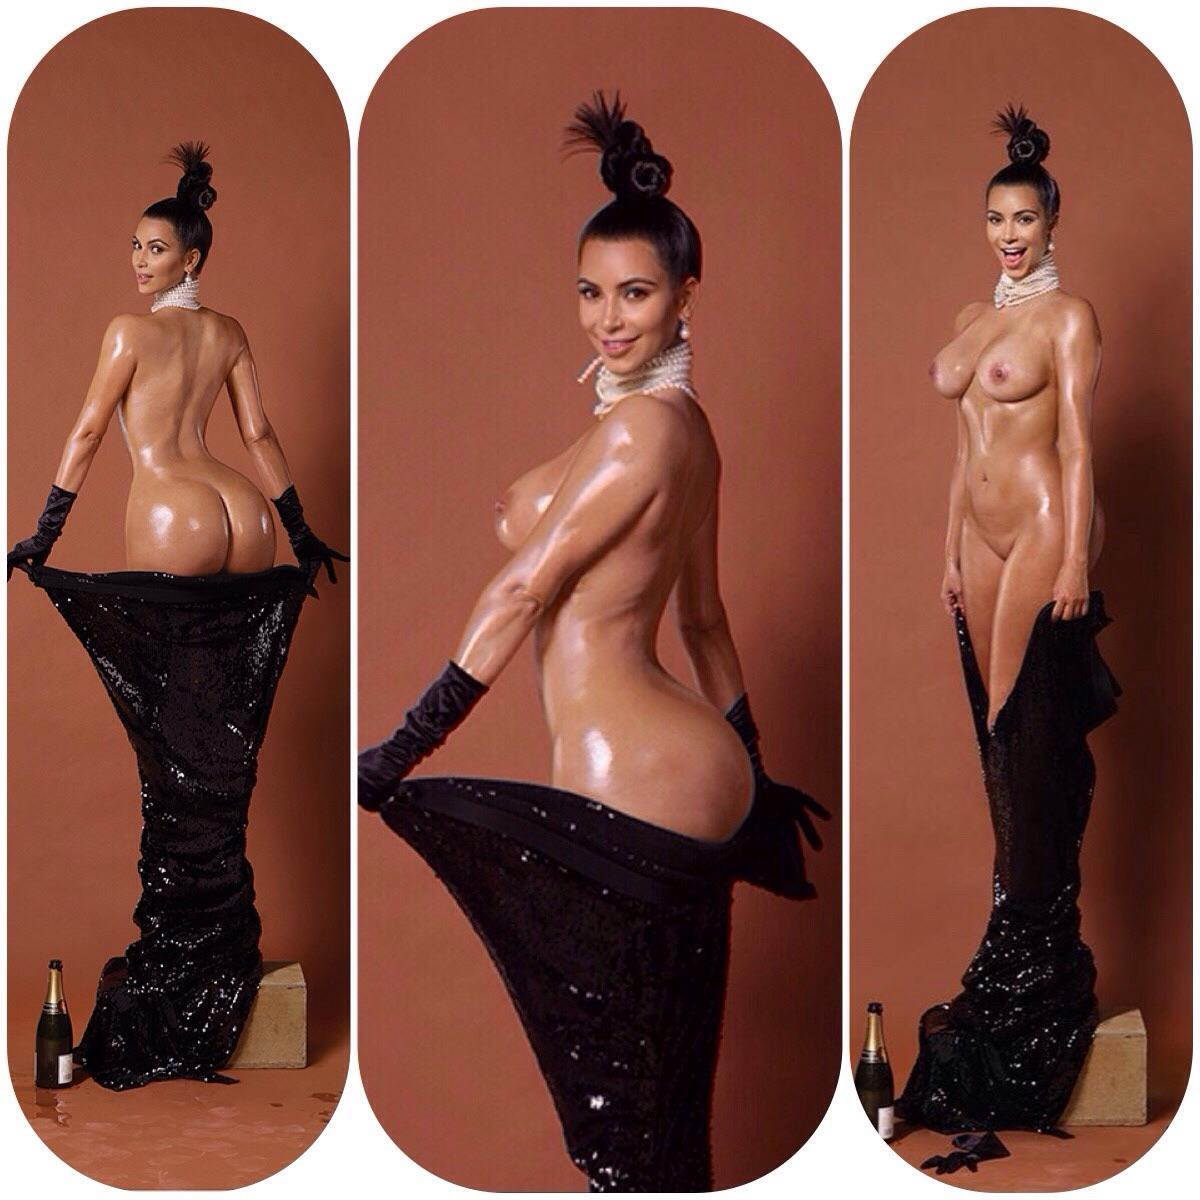 Kim kardashian fuck ass full picture